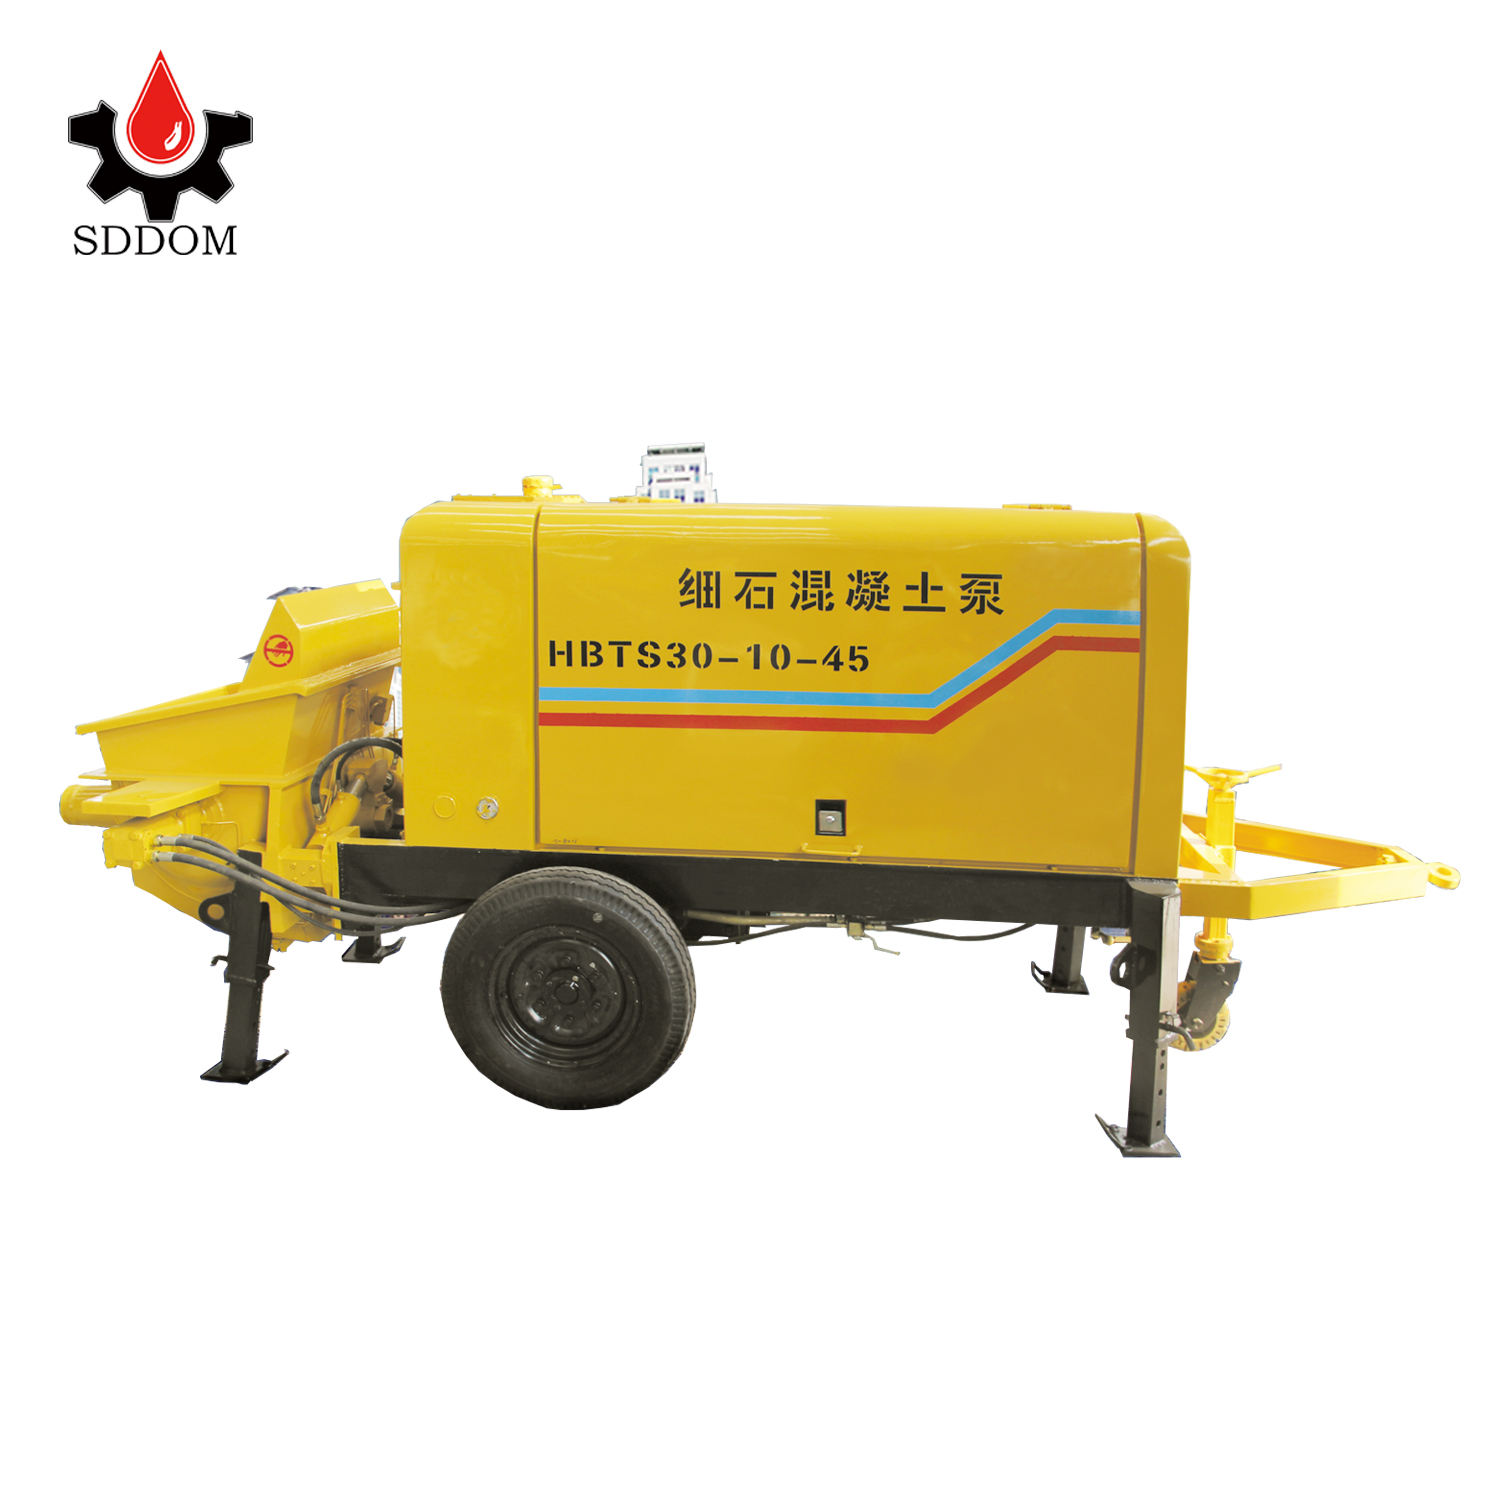 China fornecedor <span class=keywords><strong>do</strong></span> motor diesel elétrico mini pequena máquina <span class=keywords><strong>de</strong></span> mistura misturador <span class=keywords><strong>de</strong></span> <span class=keywords><strong>concreto</strong></span> com preço peças <span class=keywords><strong>do</strong></span> <span class=keywords><strong>caminhão</strong></span> bomba <span class=keywords><strong>de</strong></span> <span class=keywords><strong>concreto</strong></span> da tubulação